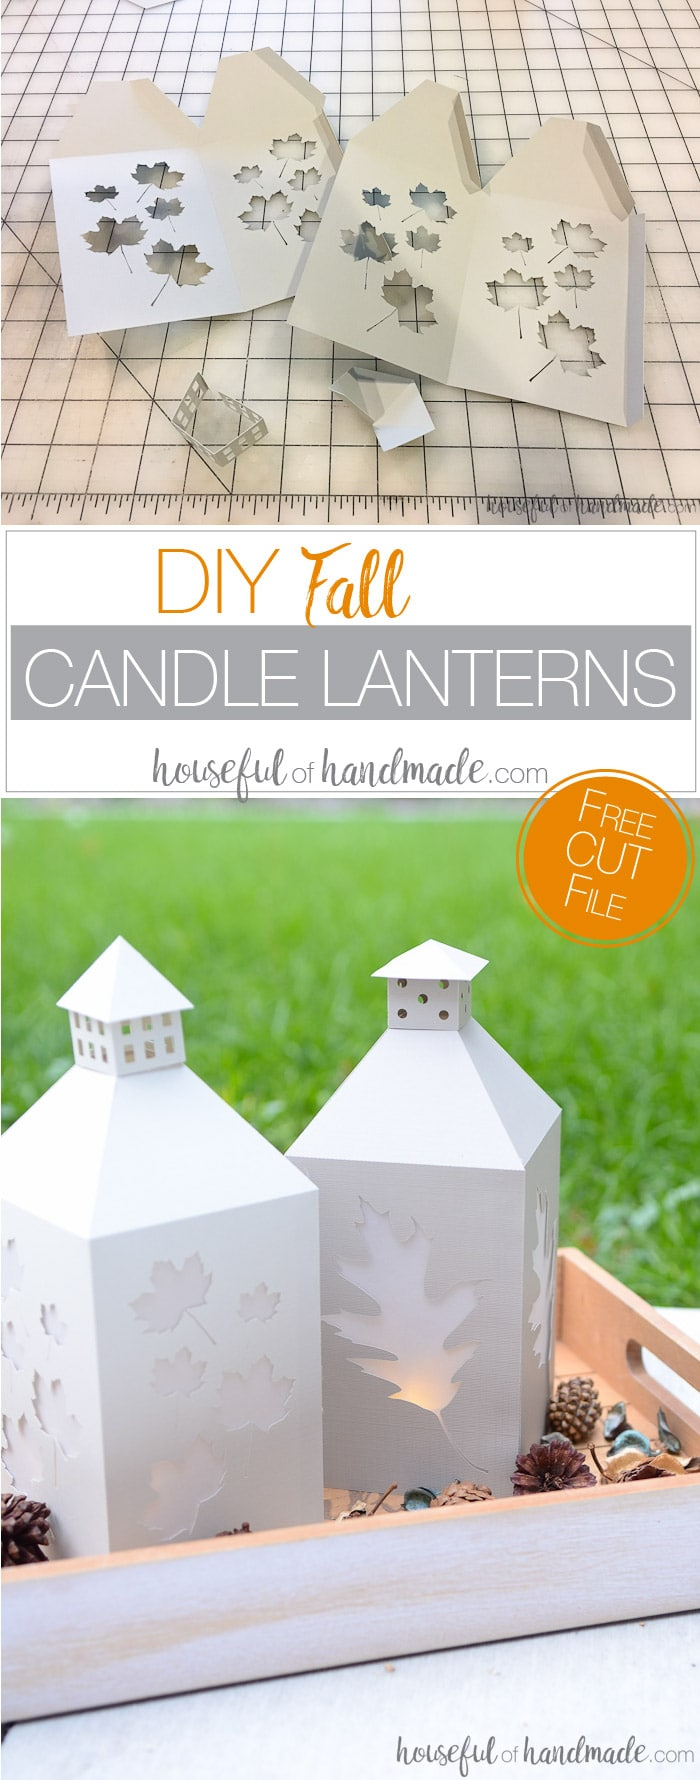 Need a quick fall decorating idea? These easy fall candle lanterns are perfect for adding a touch of autumn warmth to any room. Get the free cut file at Housefulofhandmade.com